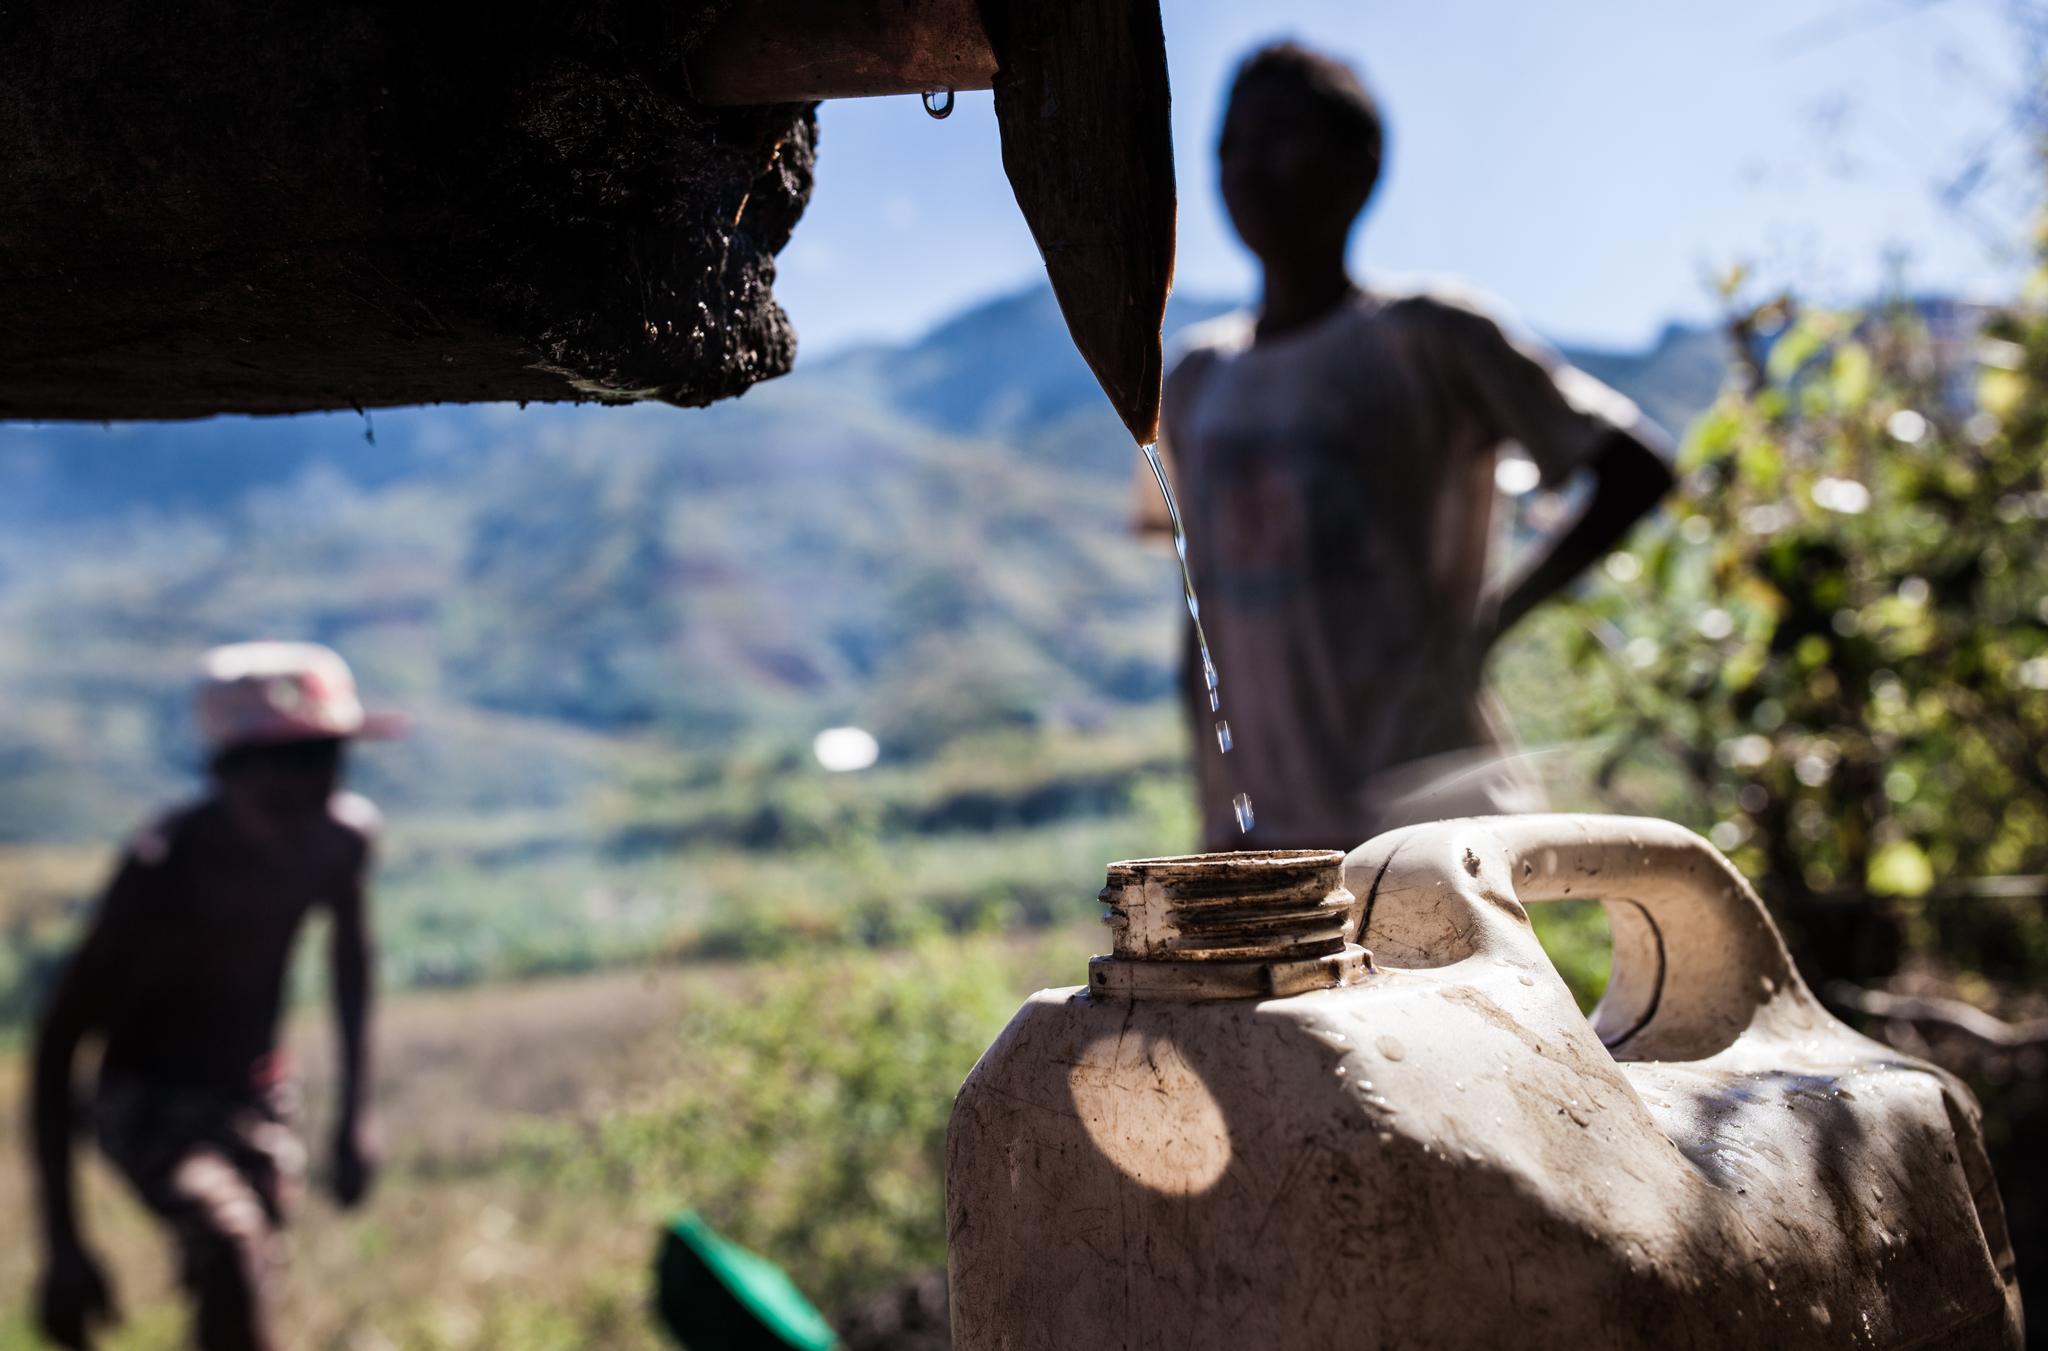 An Irrigation System from a Nearby Spring Cools the Evaporated Moonshine Which is Collected in Jerrycans